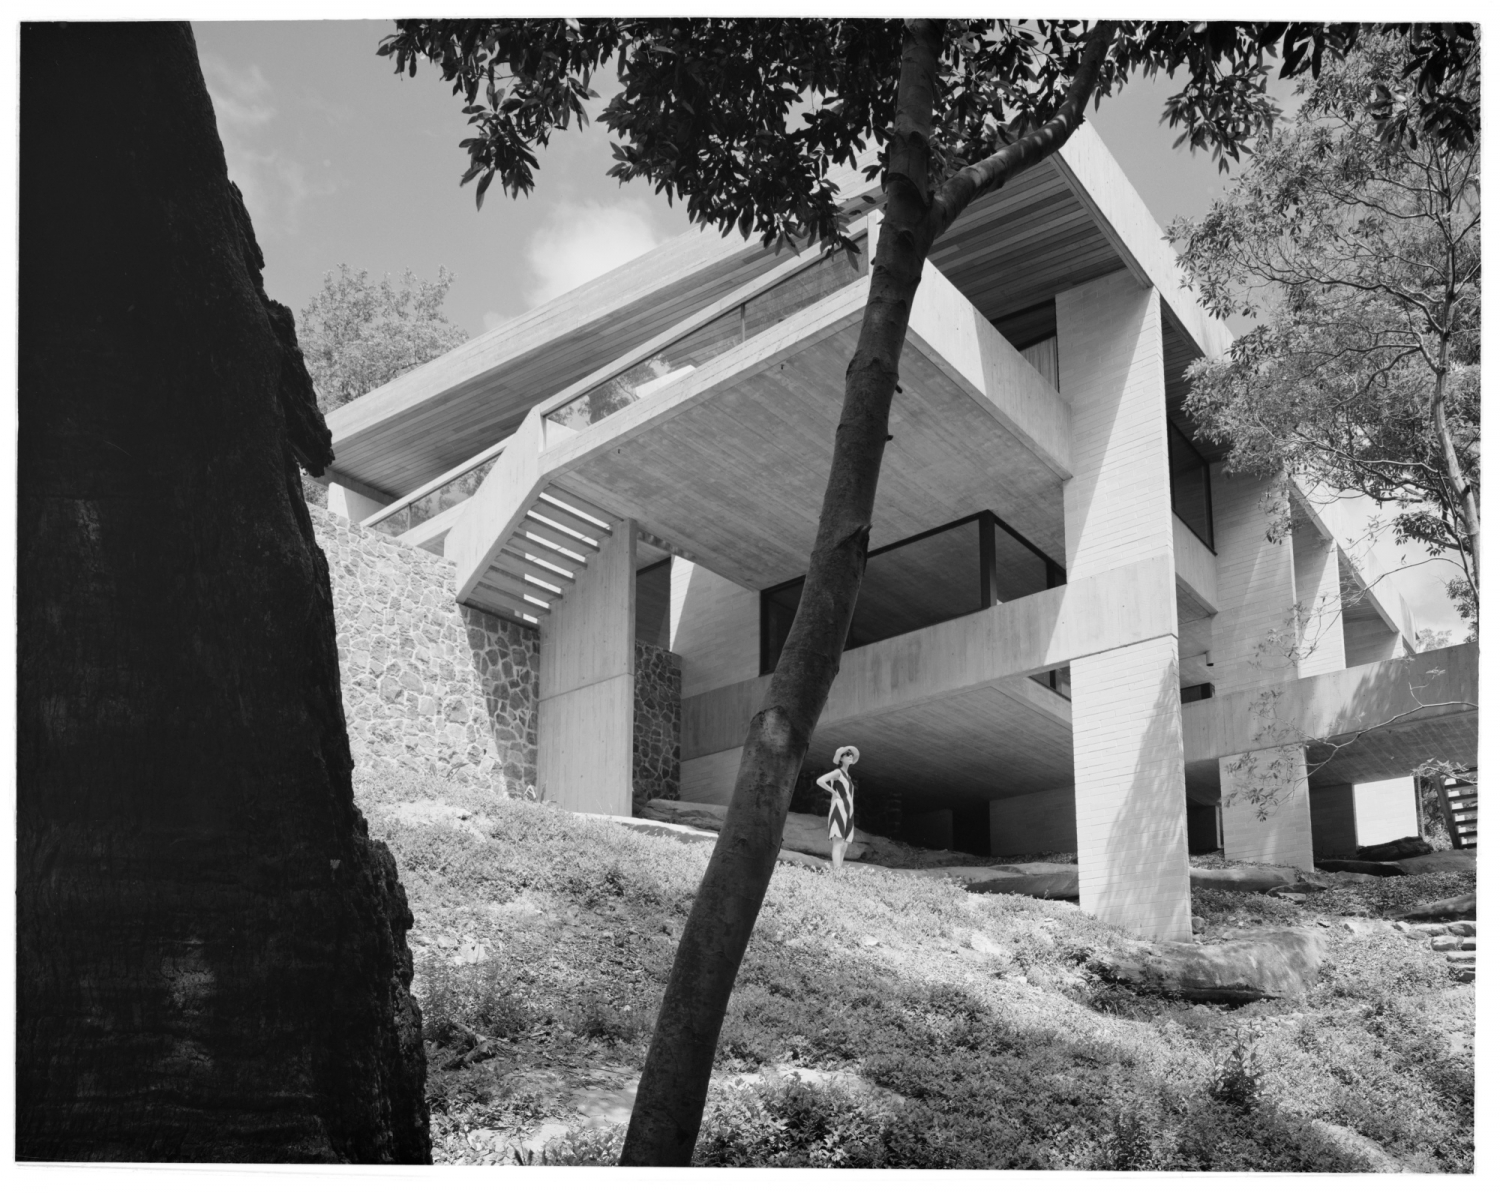 Black and white photo of exterior of modernist house with figure standing underneath it.